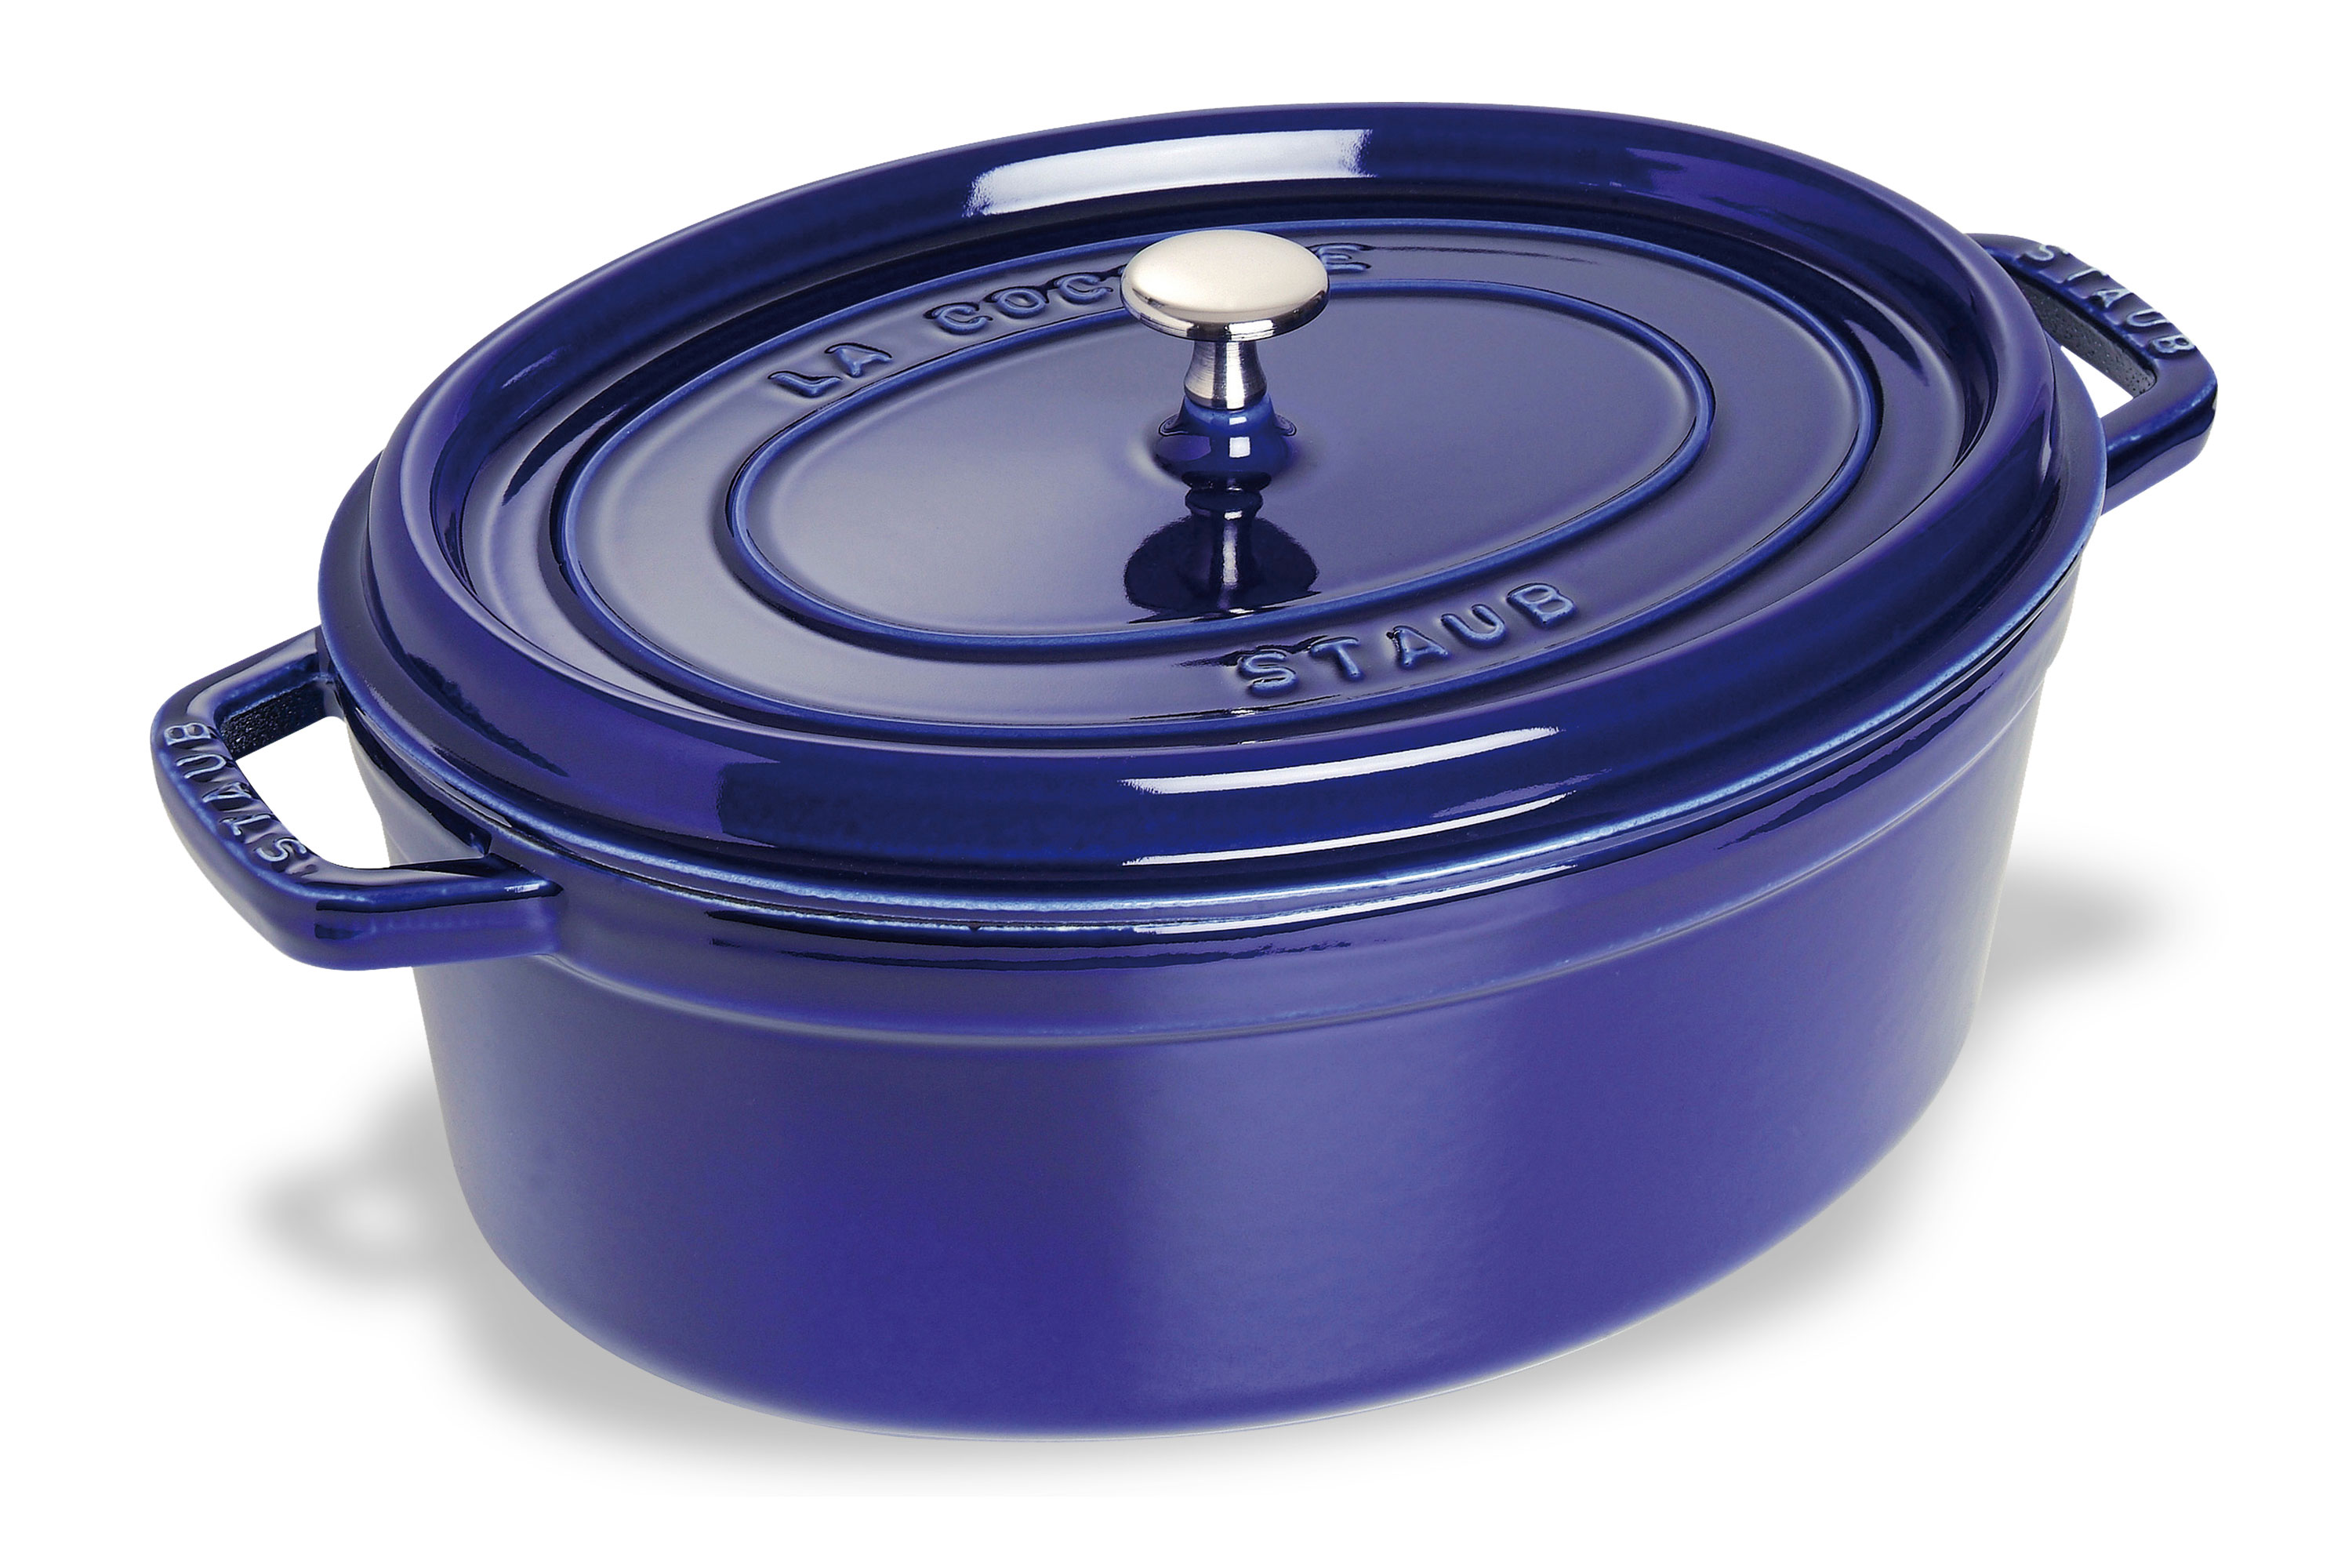 Staub Oval Dutch Oven 7 Quart Sapphire Blue Cutlery And